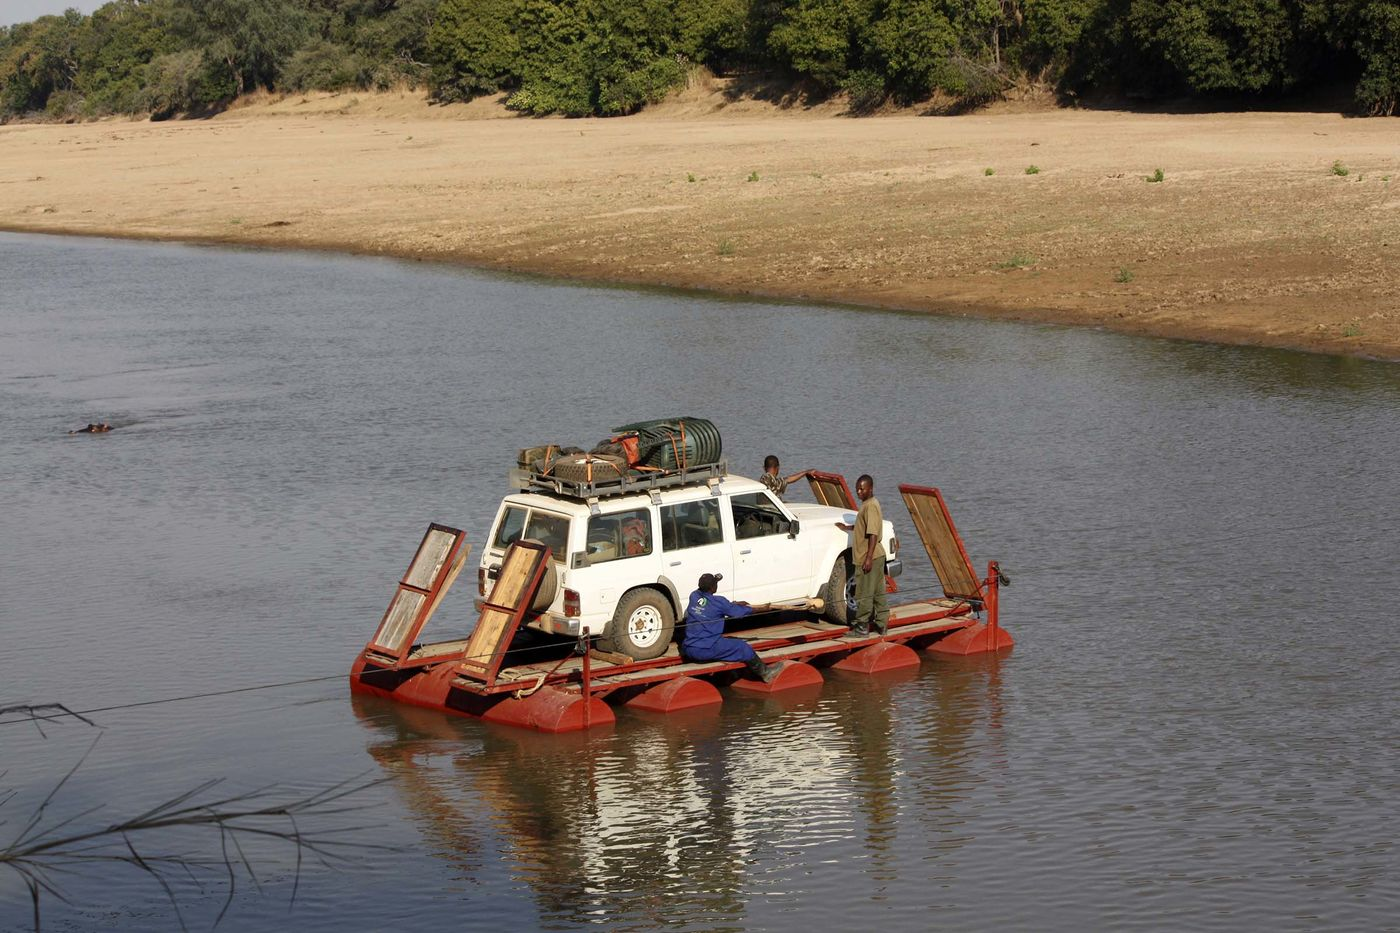 Three men and an SUV cross a river on a pontoon. The shore and trees are visible in the background, and a hippo's eyes are visible peeking out of the water.